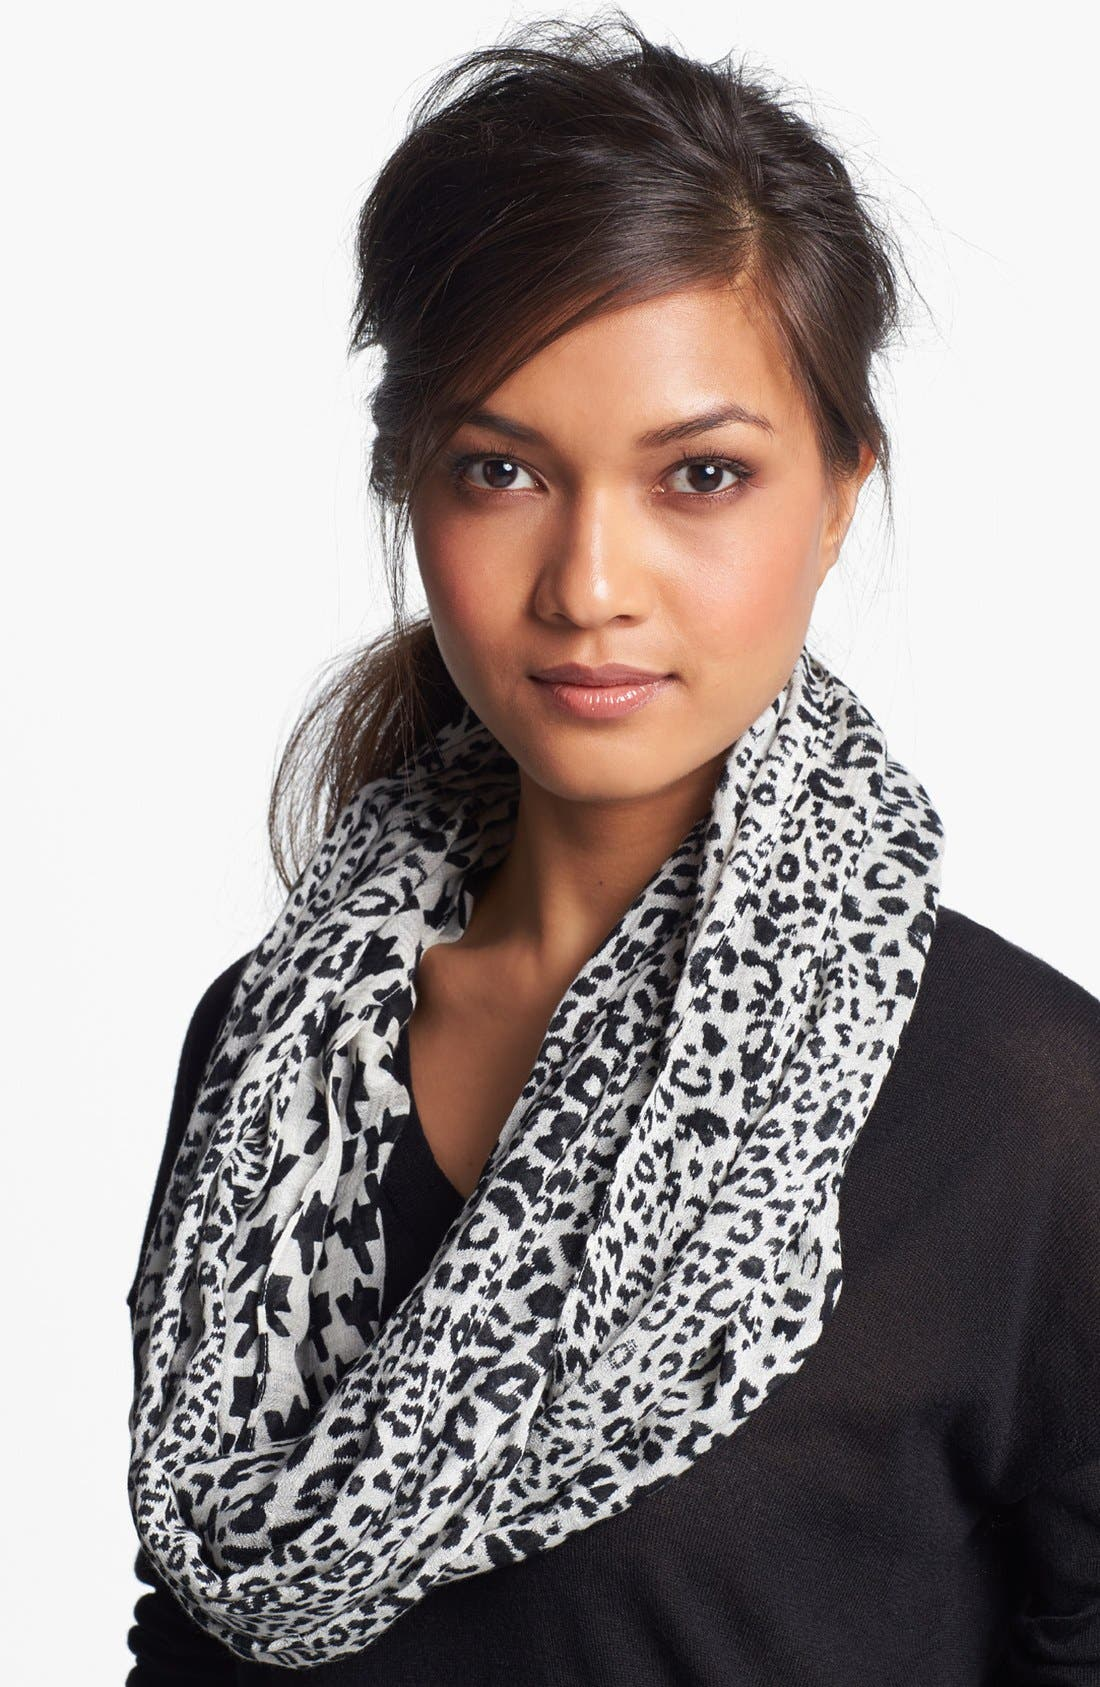 Alternate Image 1 Selected - Nordstrom Animal Print & Houndstooth Infinity Scarf